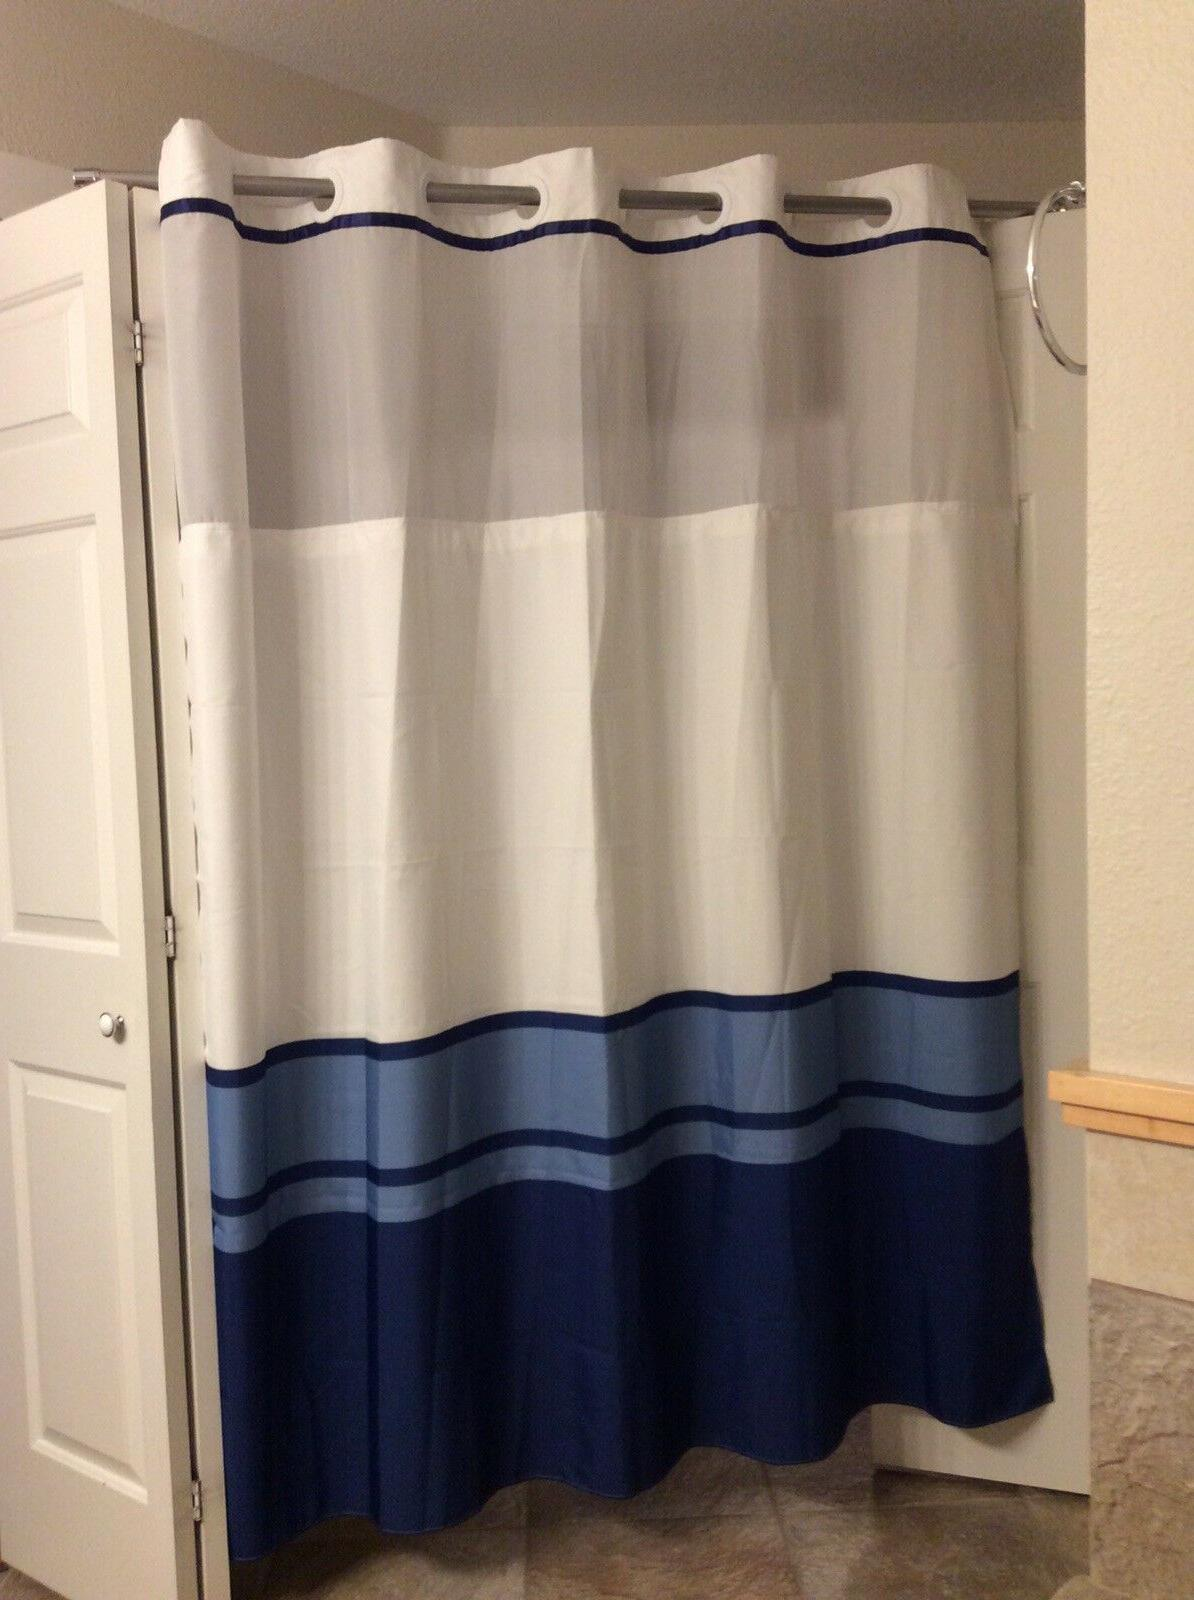 hookless shower curtain 71x77 white and